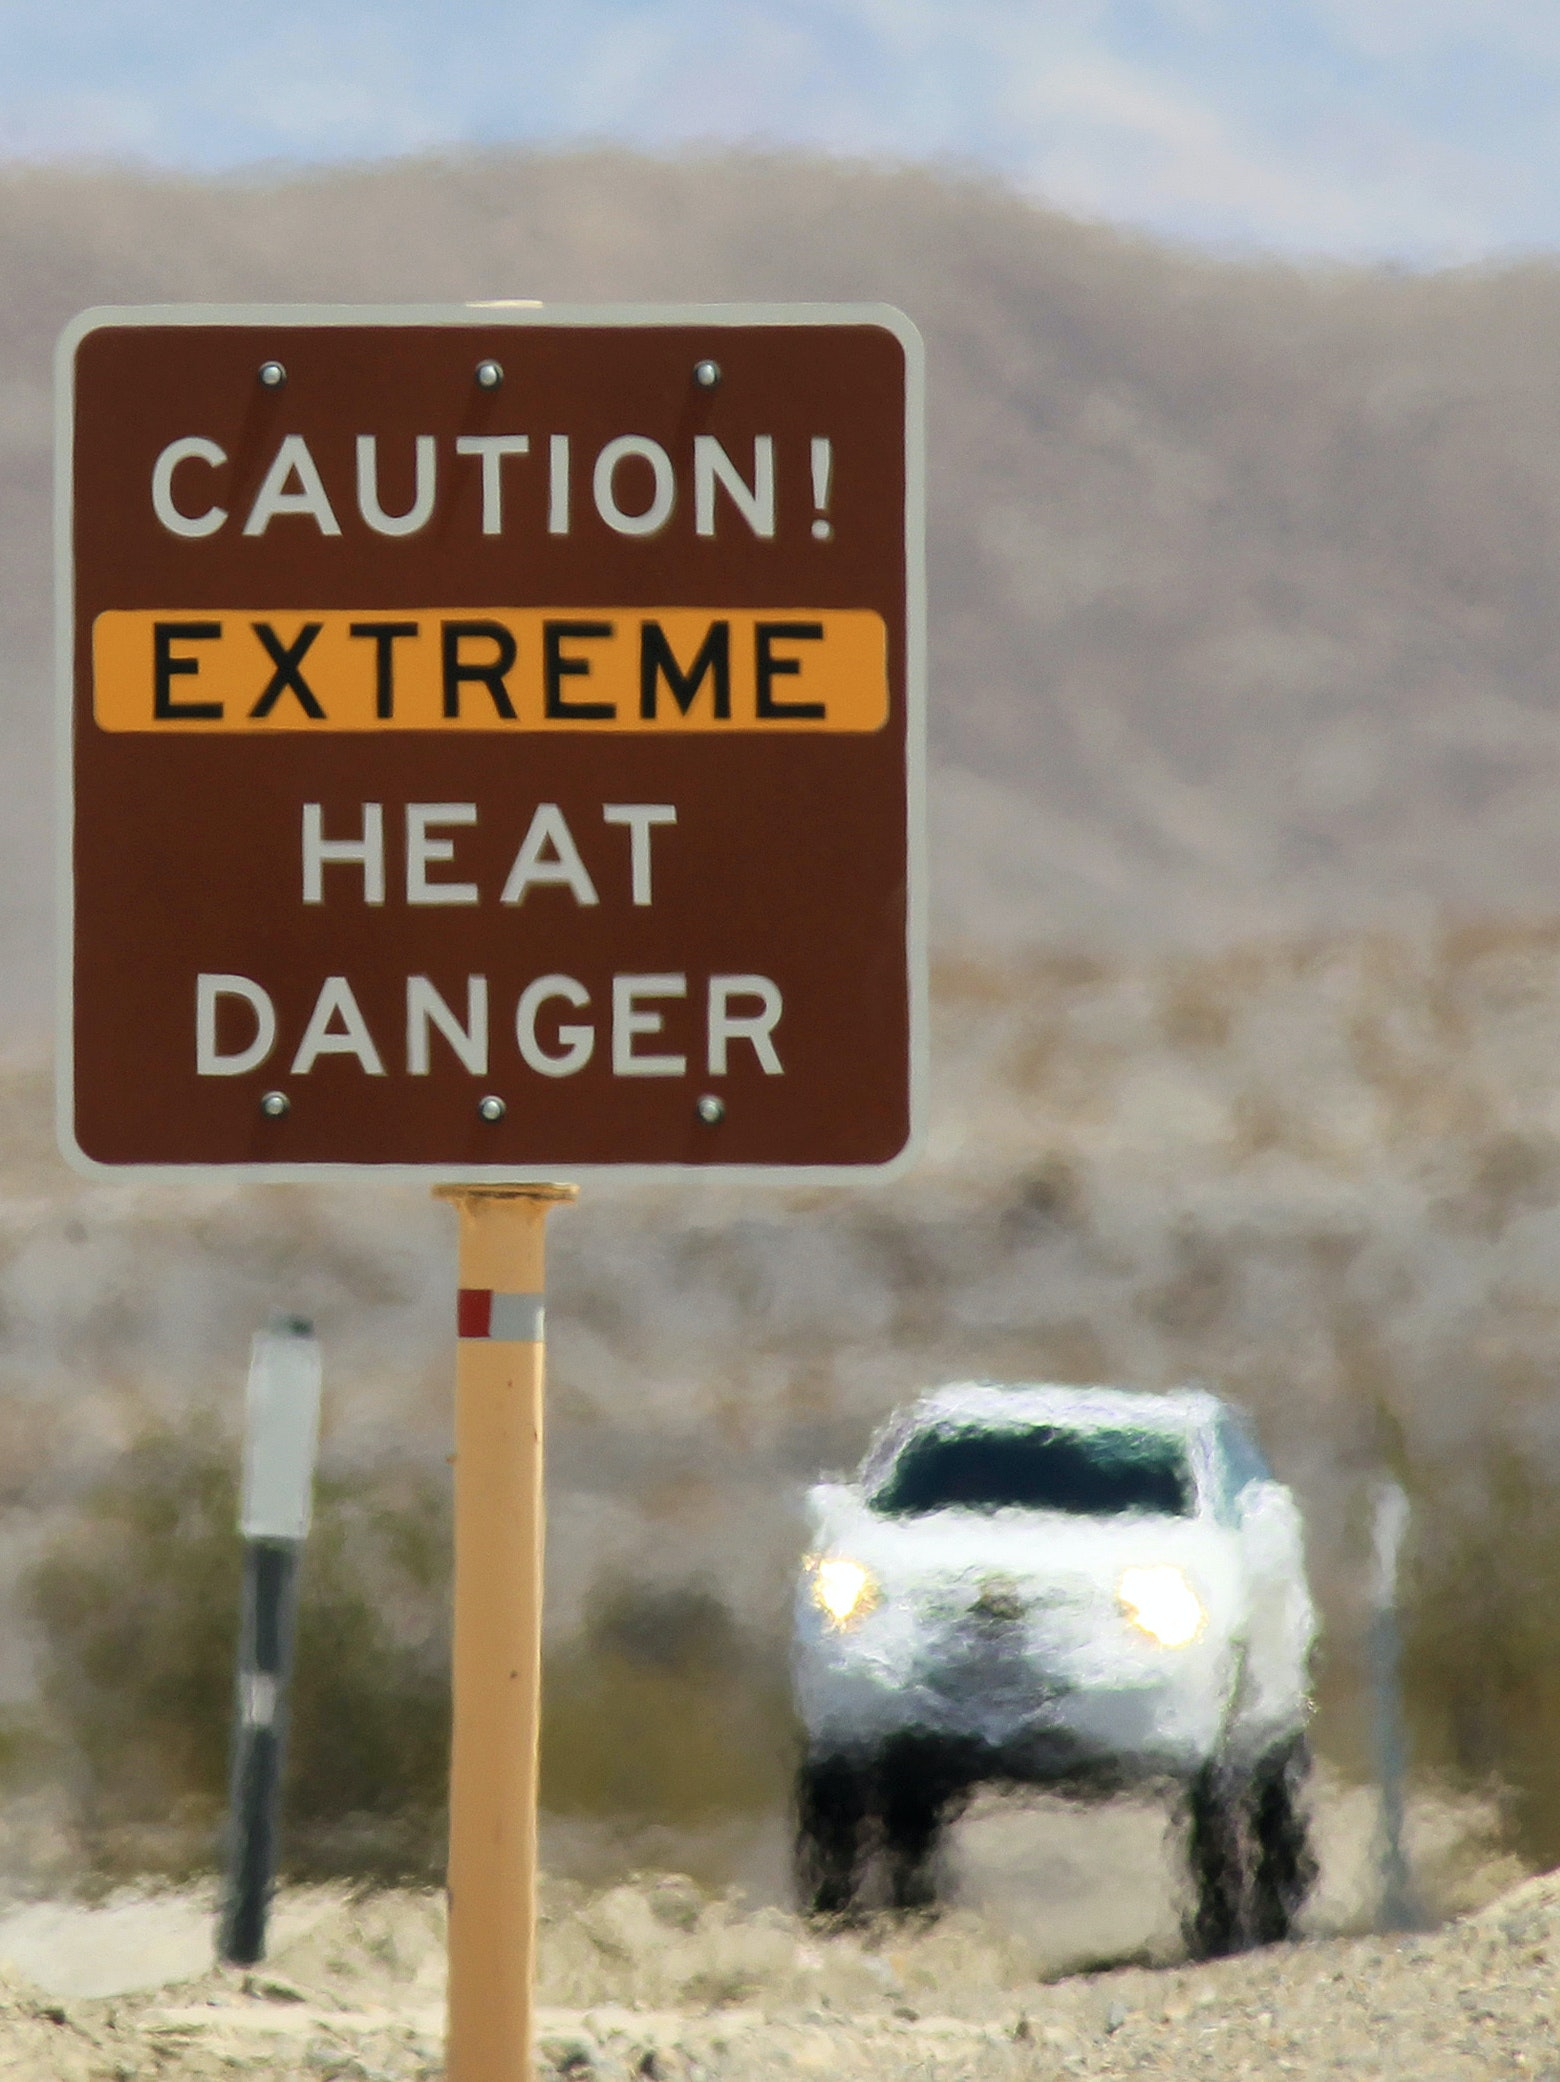 Heat waves rise near a heat danger warning sign on the eve of the AdventurCORPS Badwater 135 ultra-marathon race on July 14, 2013 in Death Valley National Park, California.